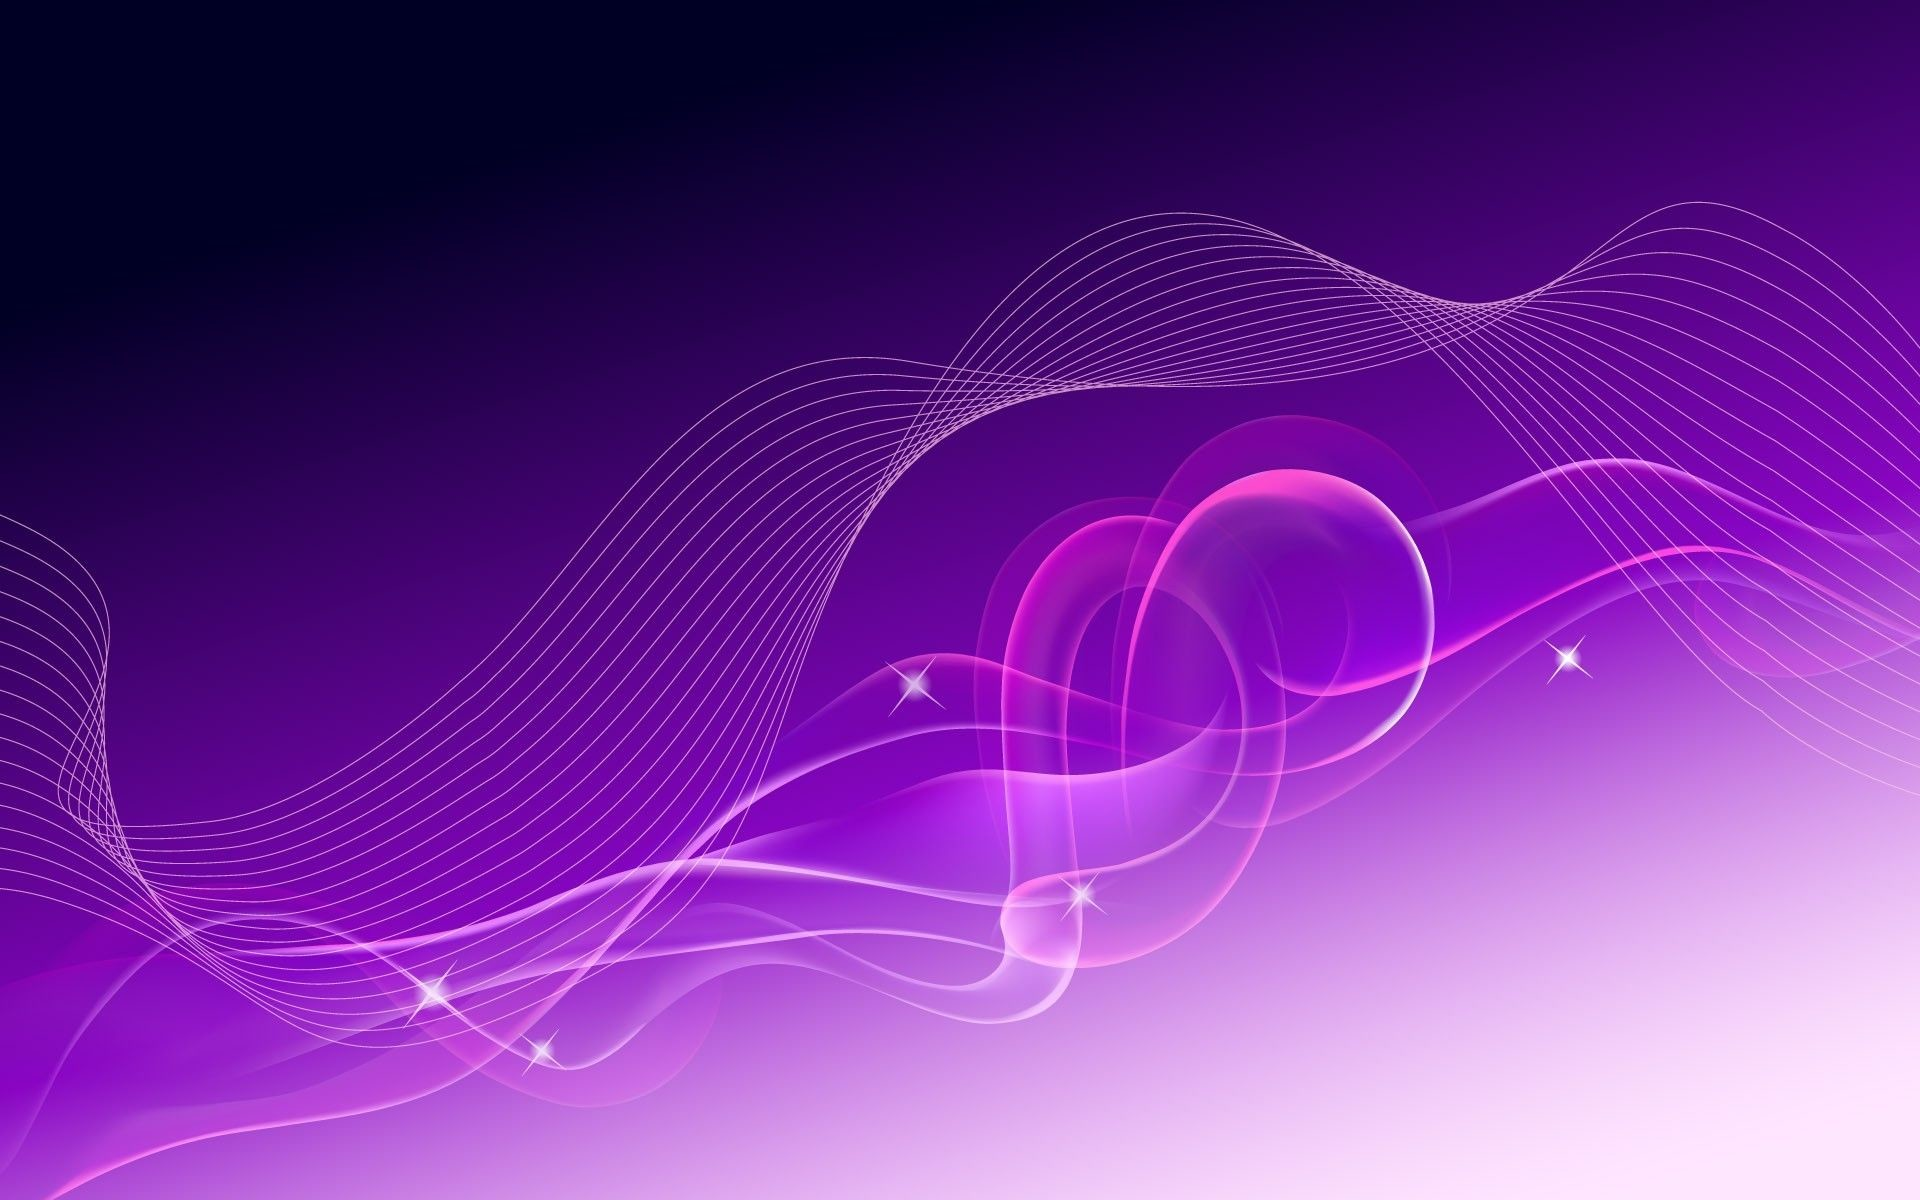 Abstract Purple Backgrounds Wallpaper Cave Wallpapers For Dark Background.  corporate interior design. housing blueprints …